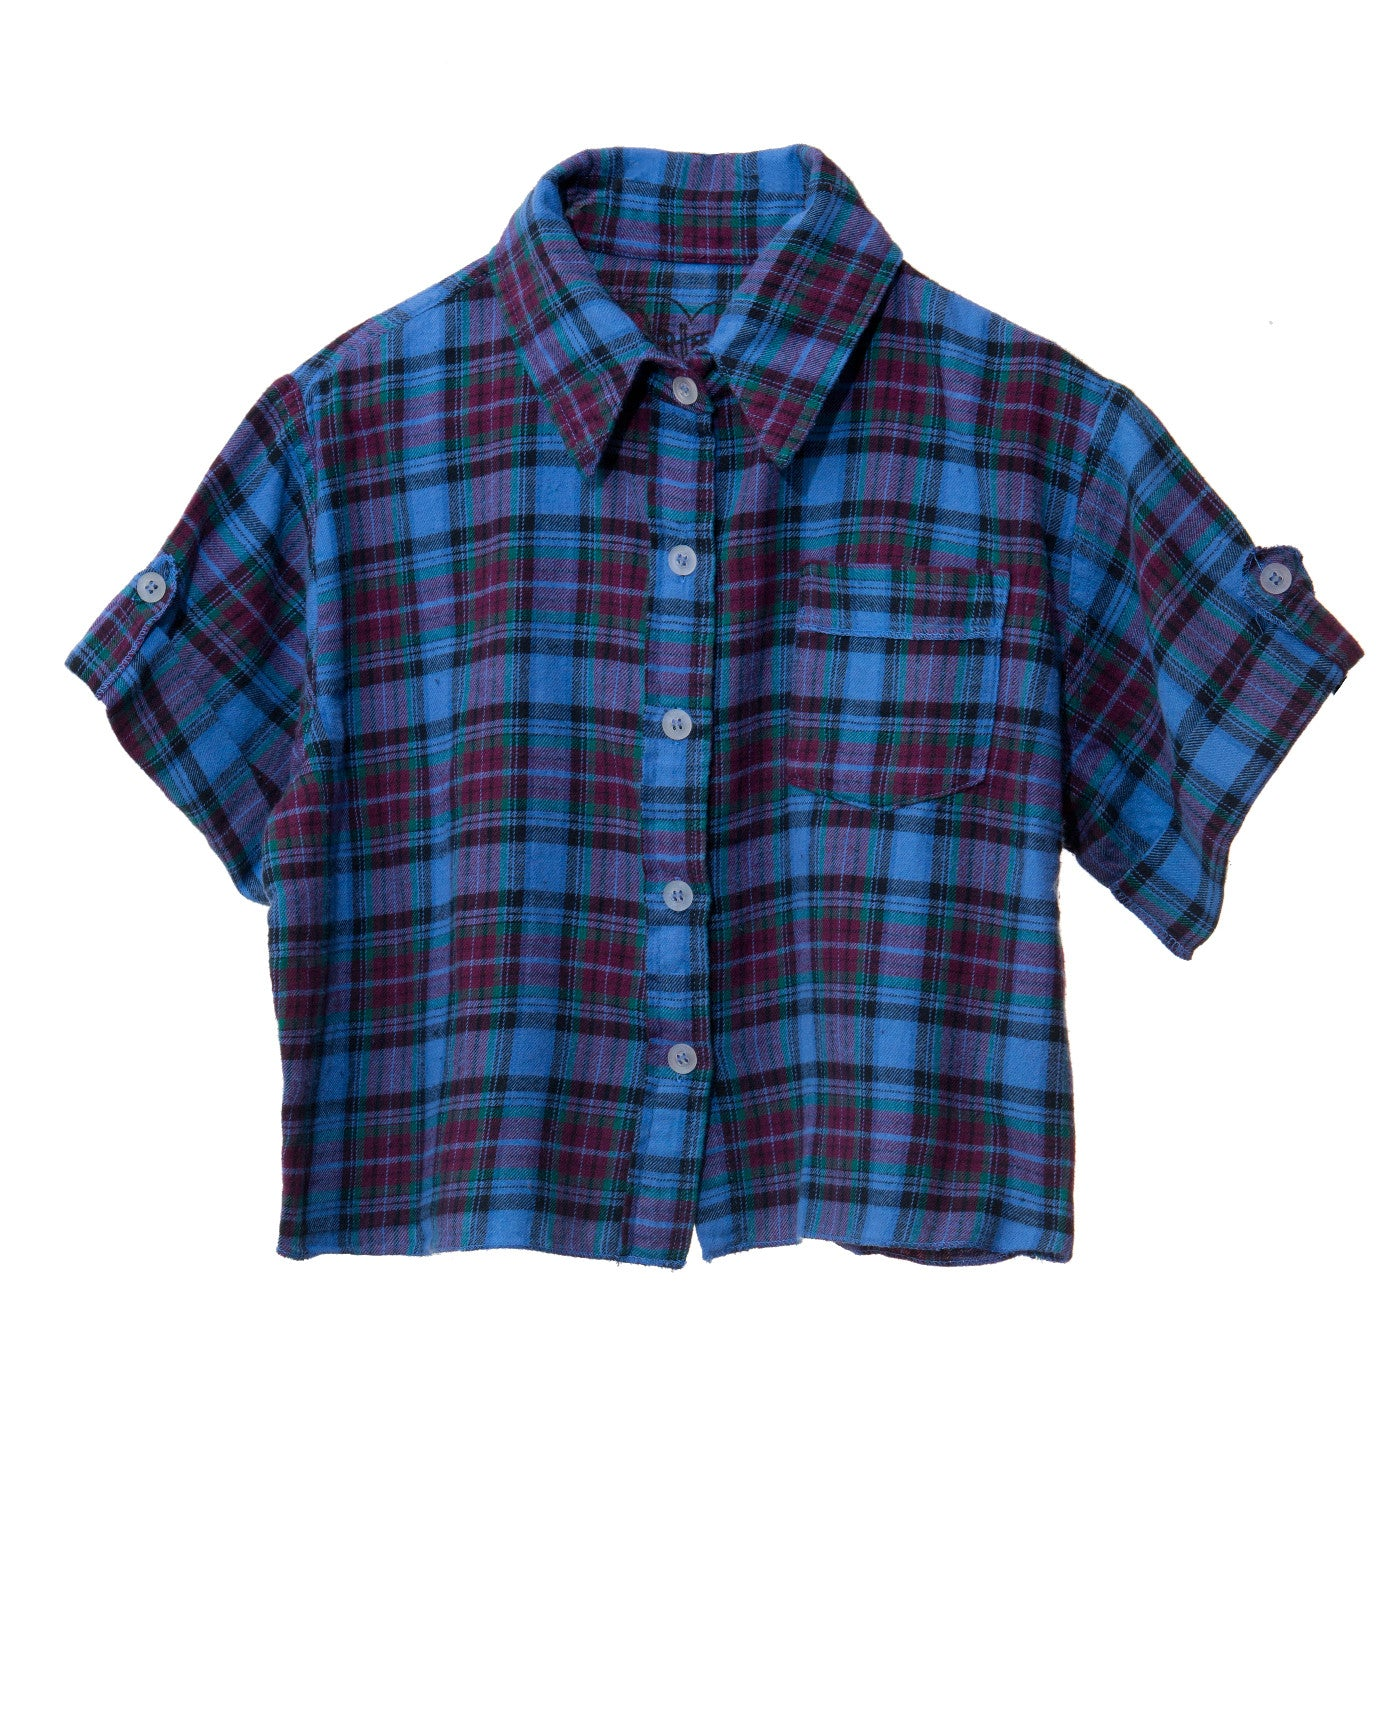 FLANNEL STAR HEART TWEEN SHIRT